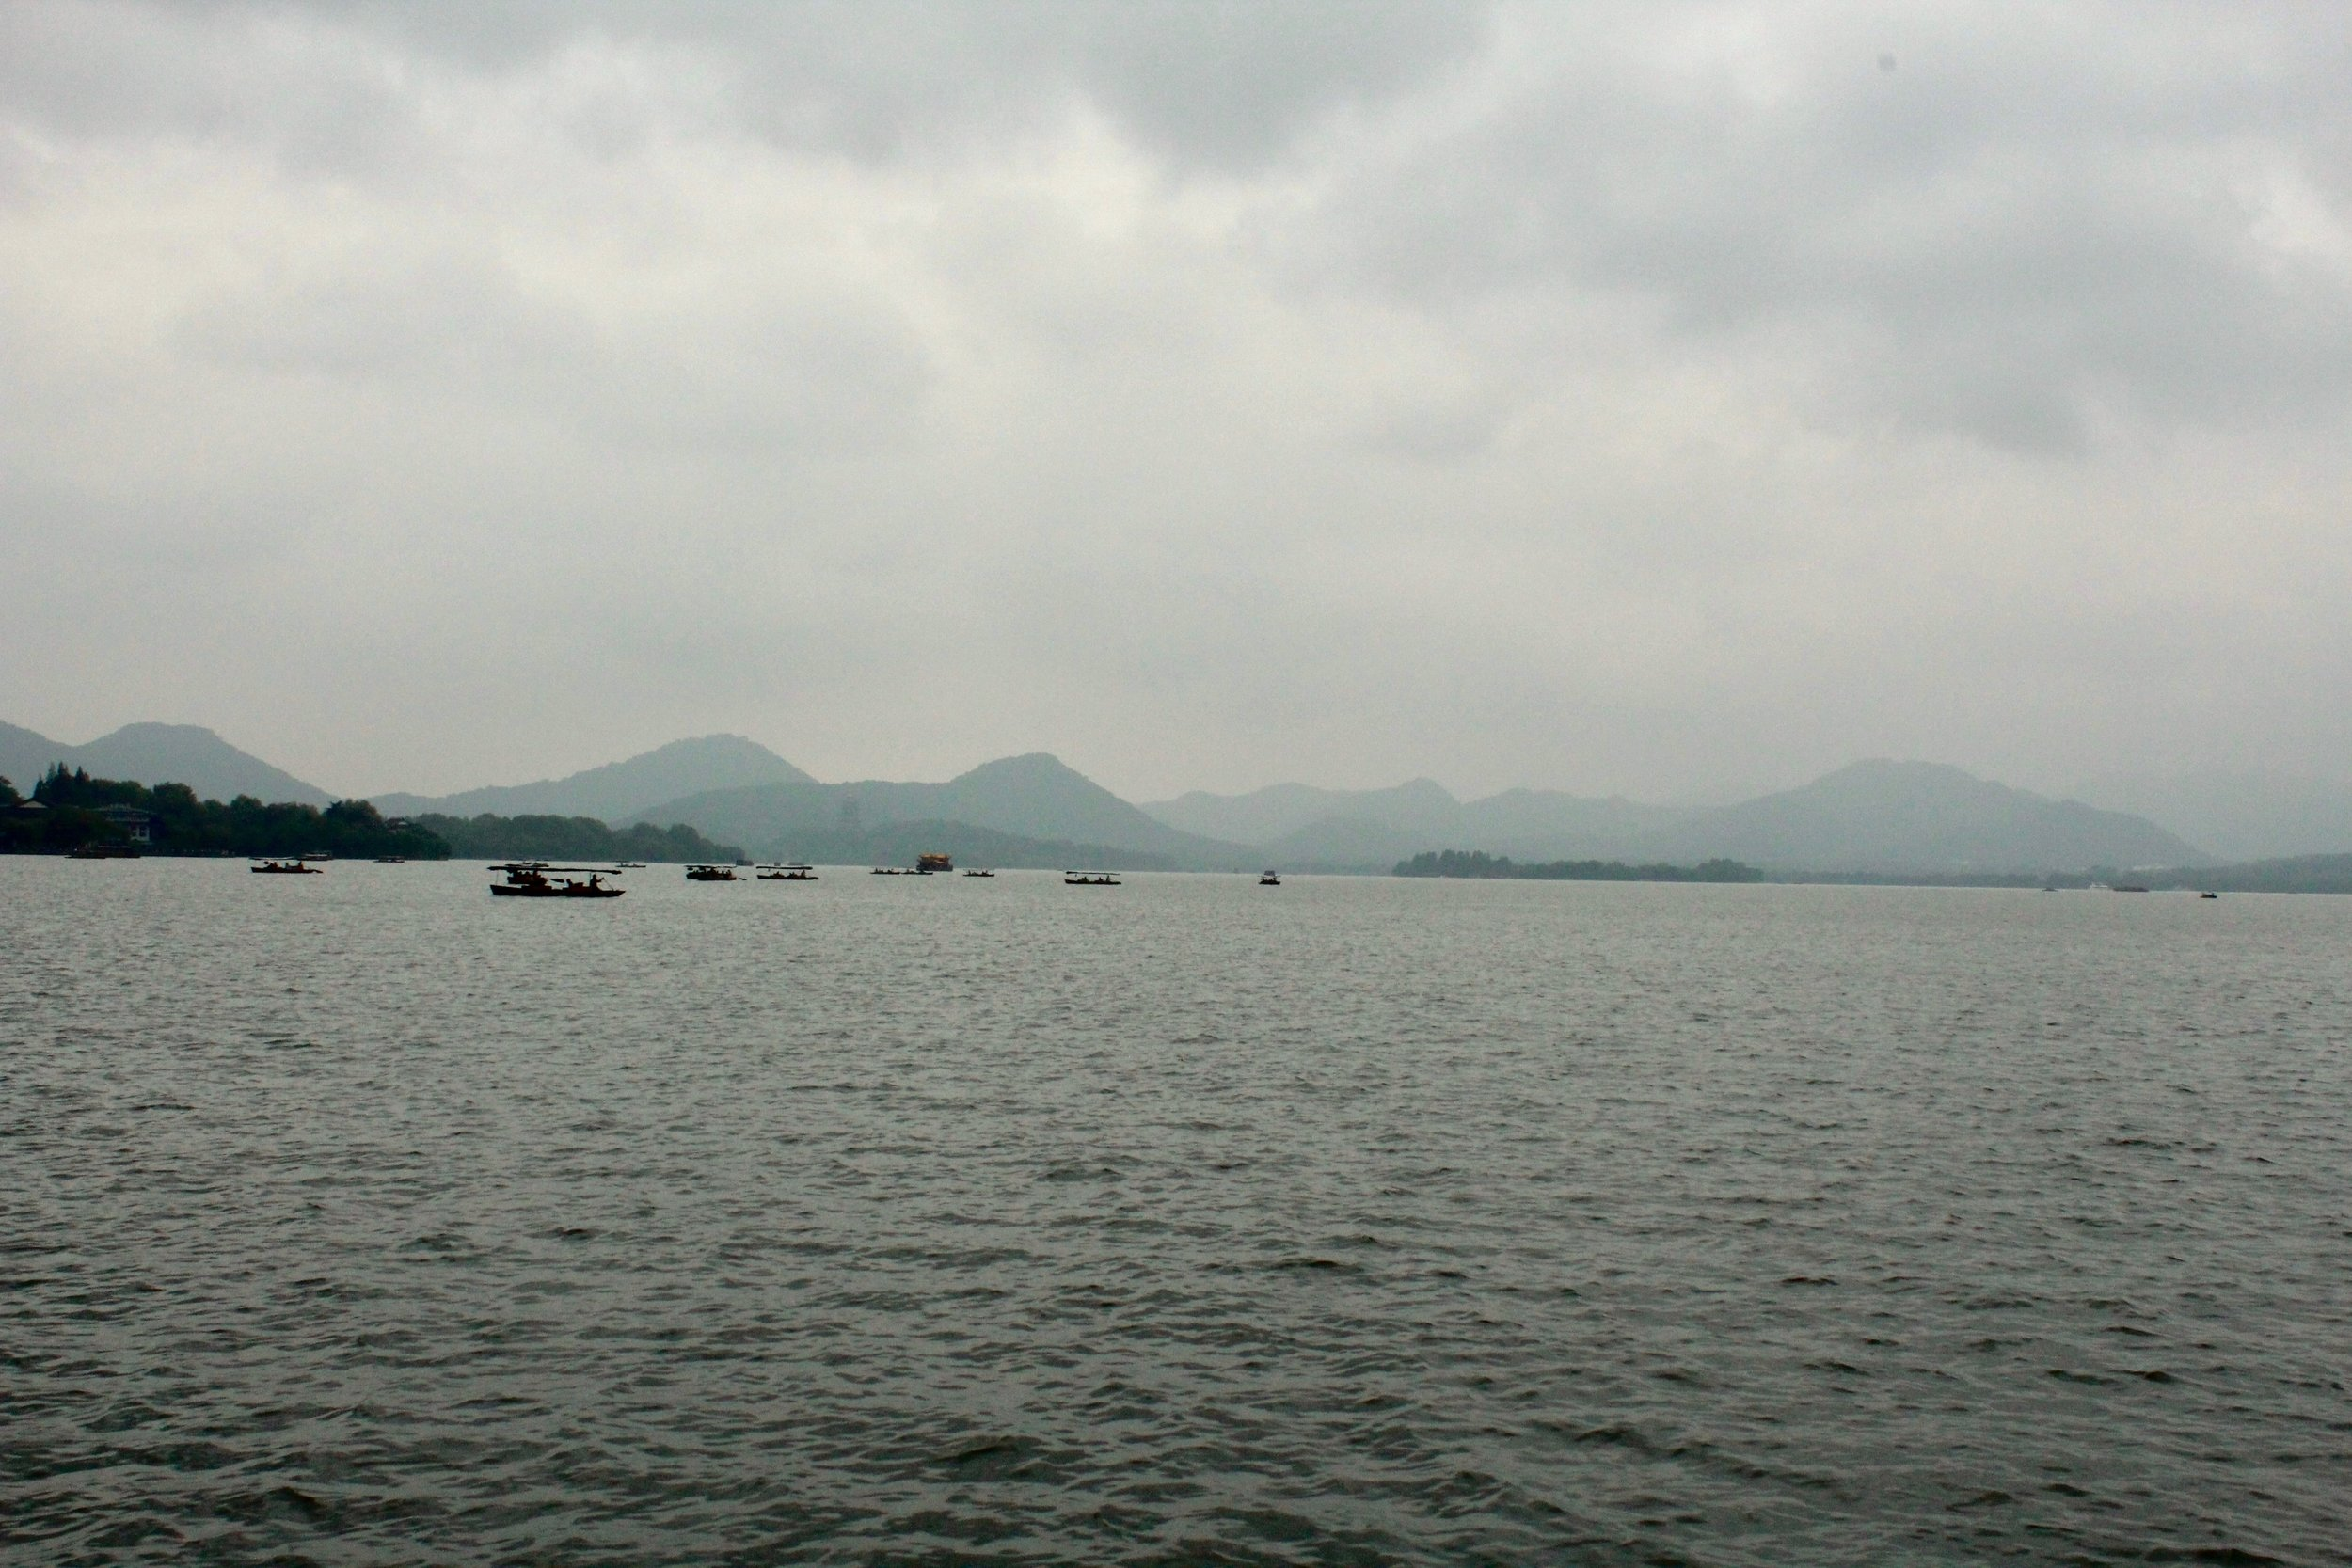 Cloudy day on West Lake, Hangzhou.